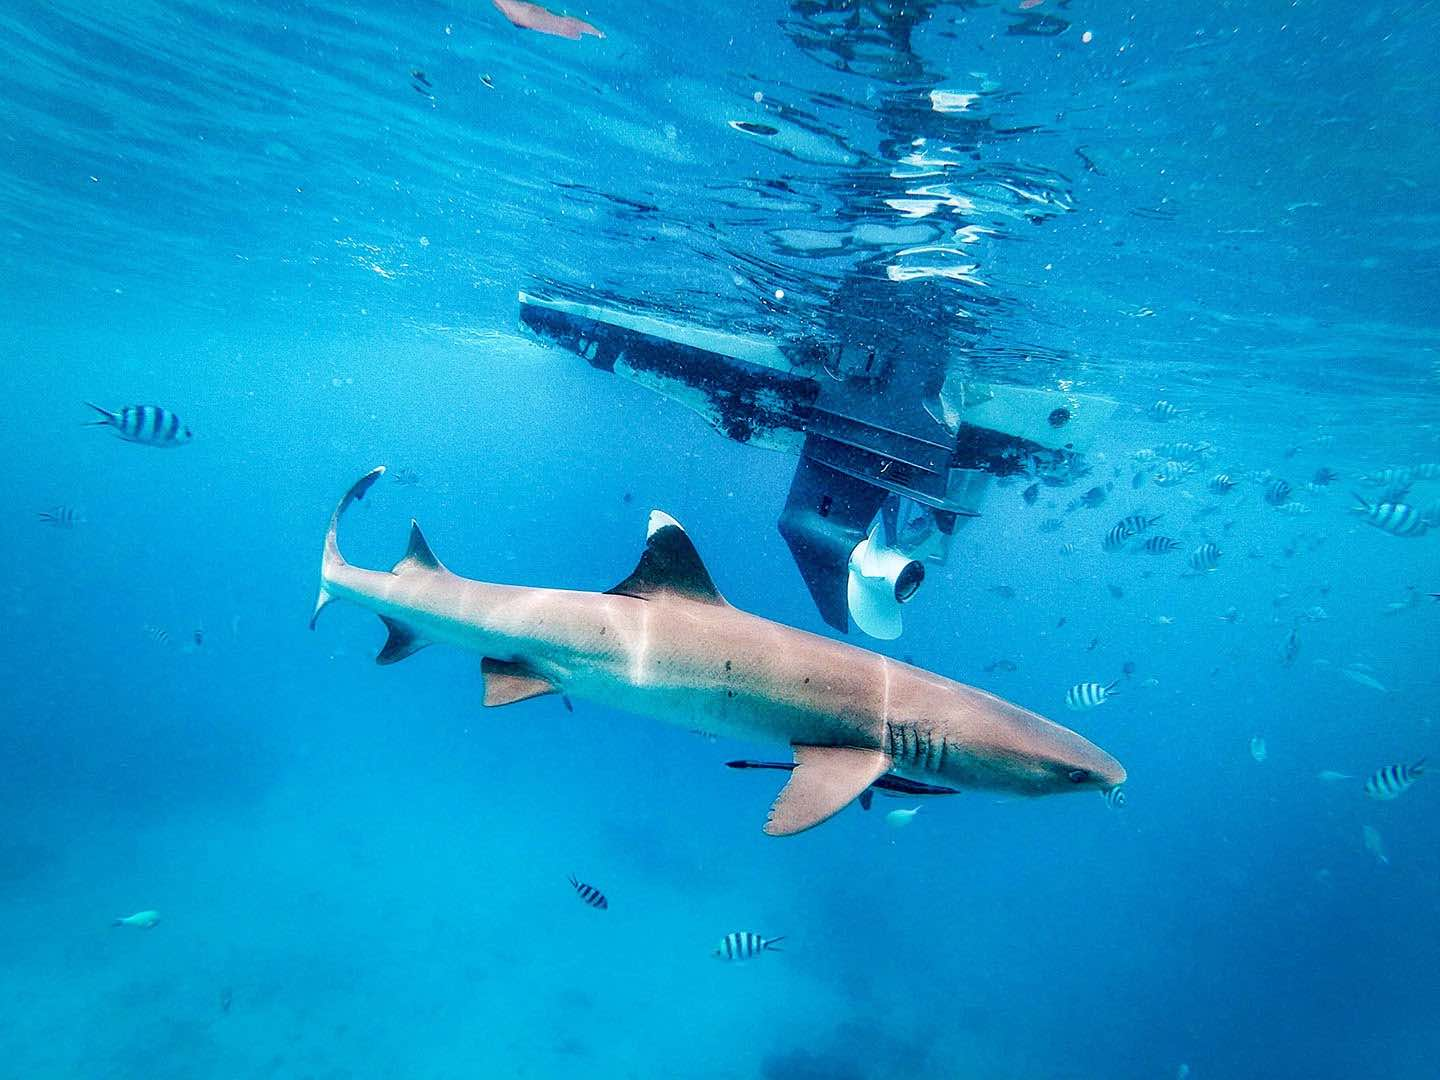 Image of reef shark in front of motorboat